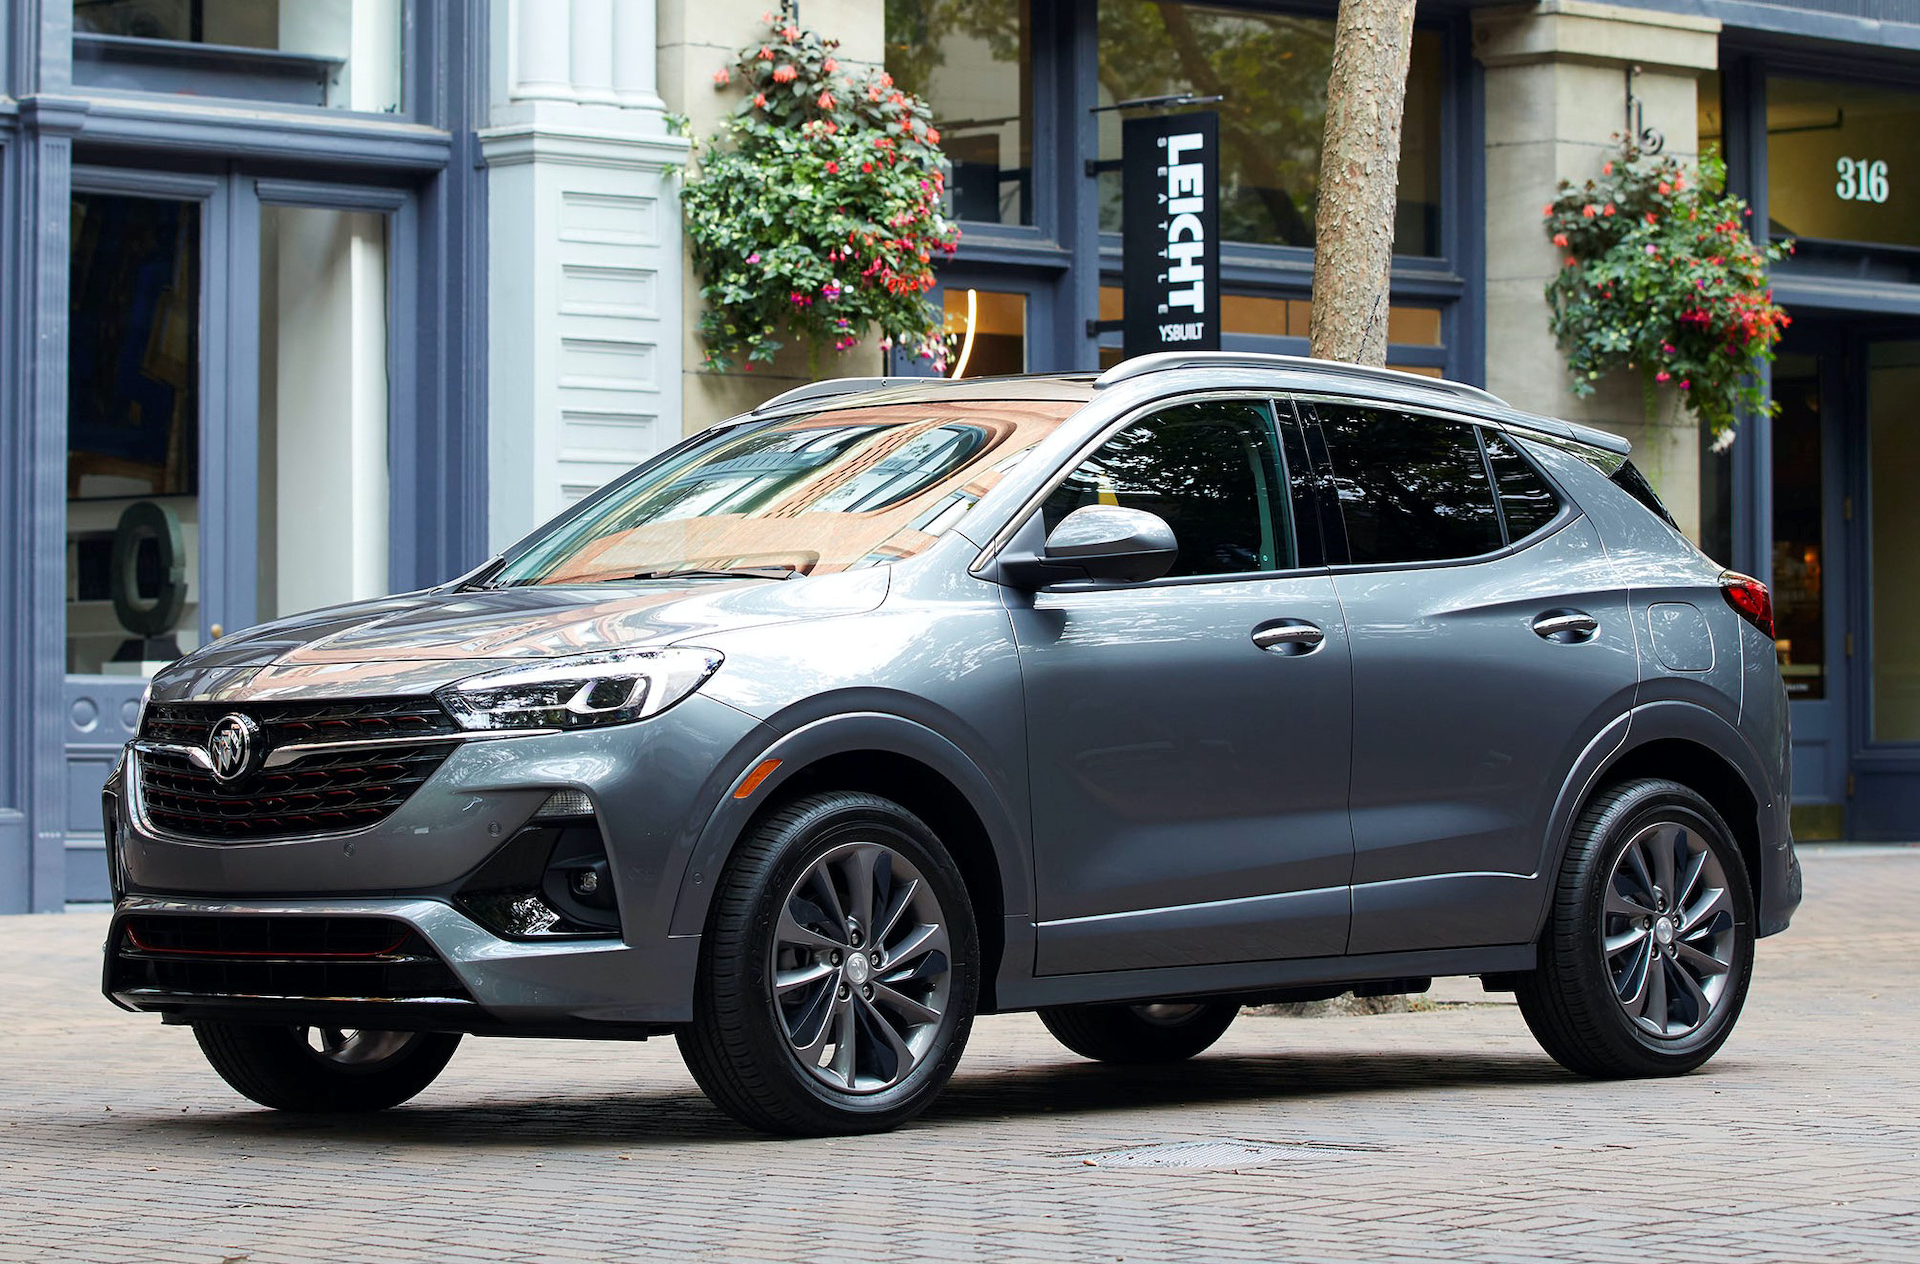 2021 Buick Encore Review, Ratings, Specs, Prices, And Photos 2021 Buick Encore Release Date, Specifications, Exterior Colors